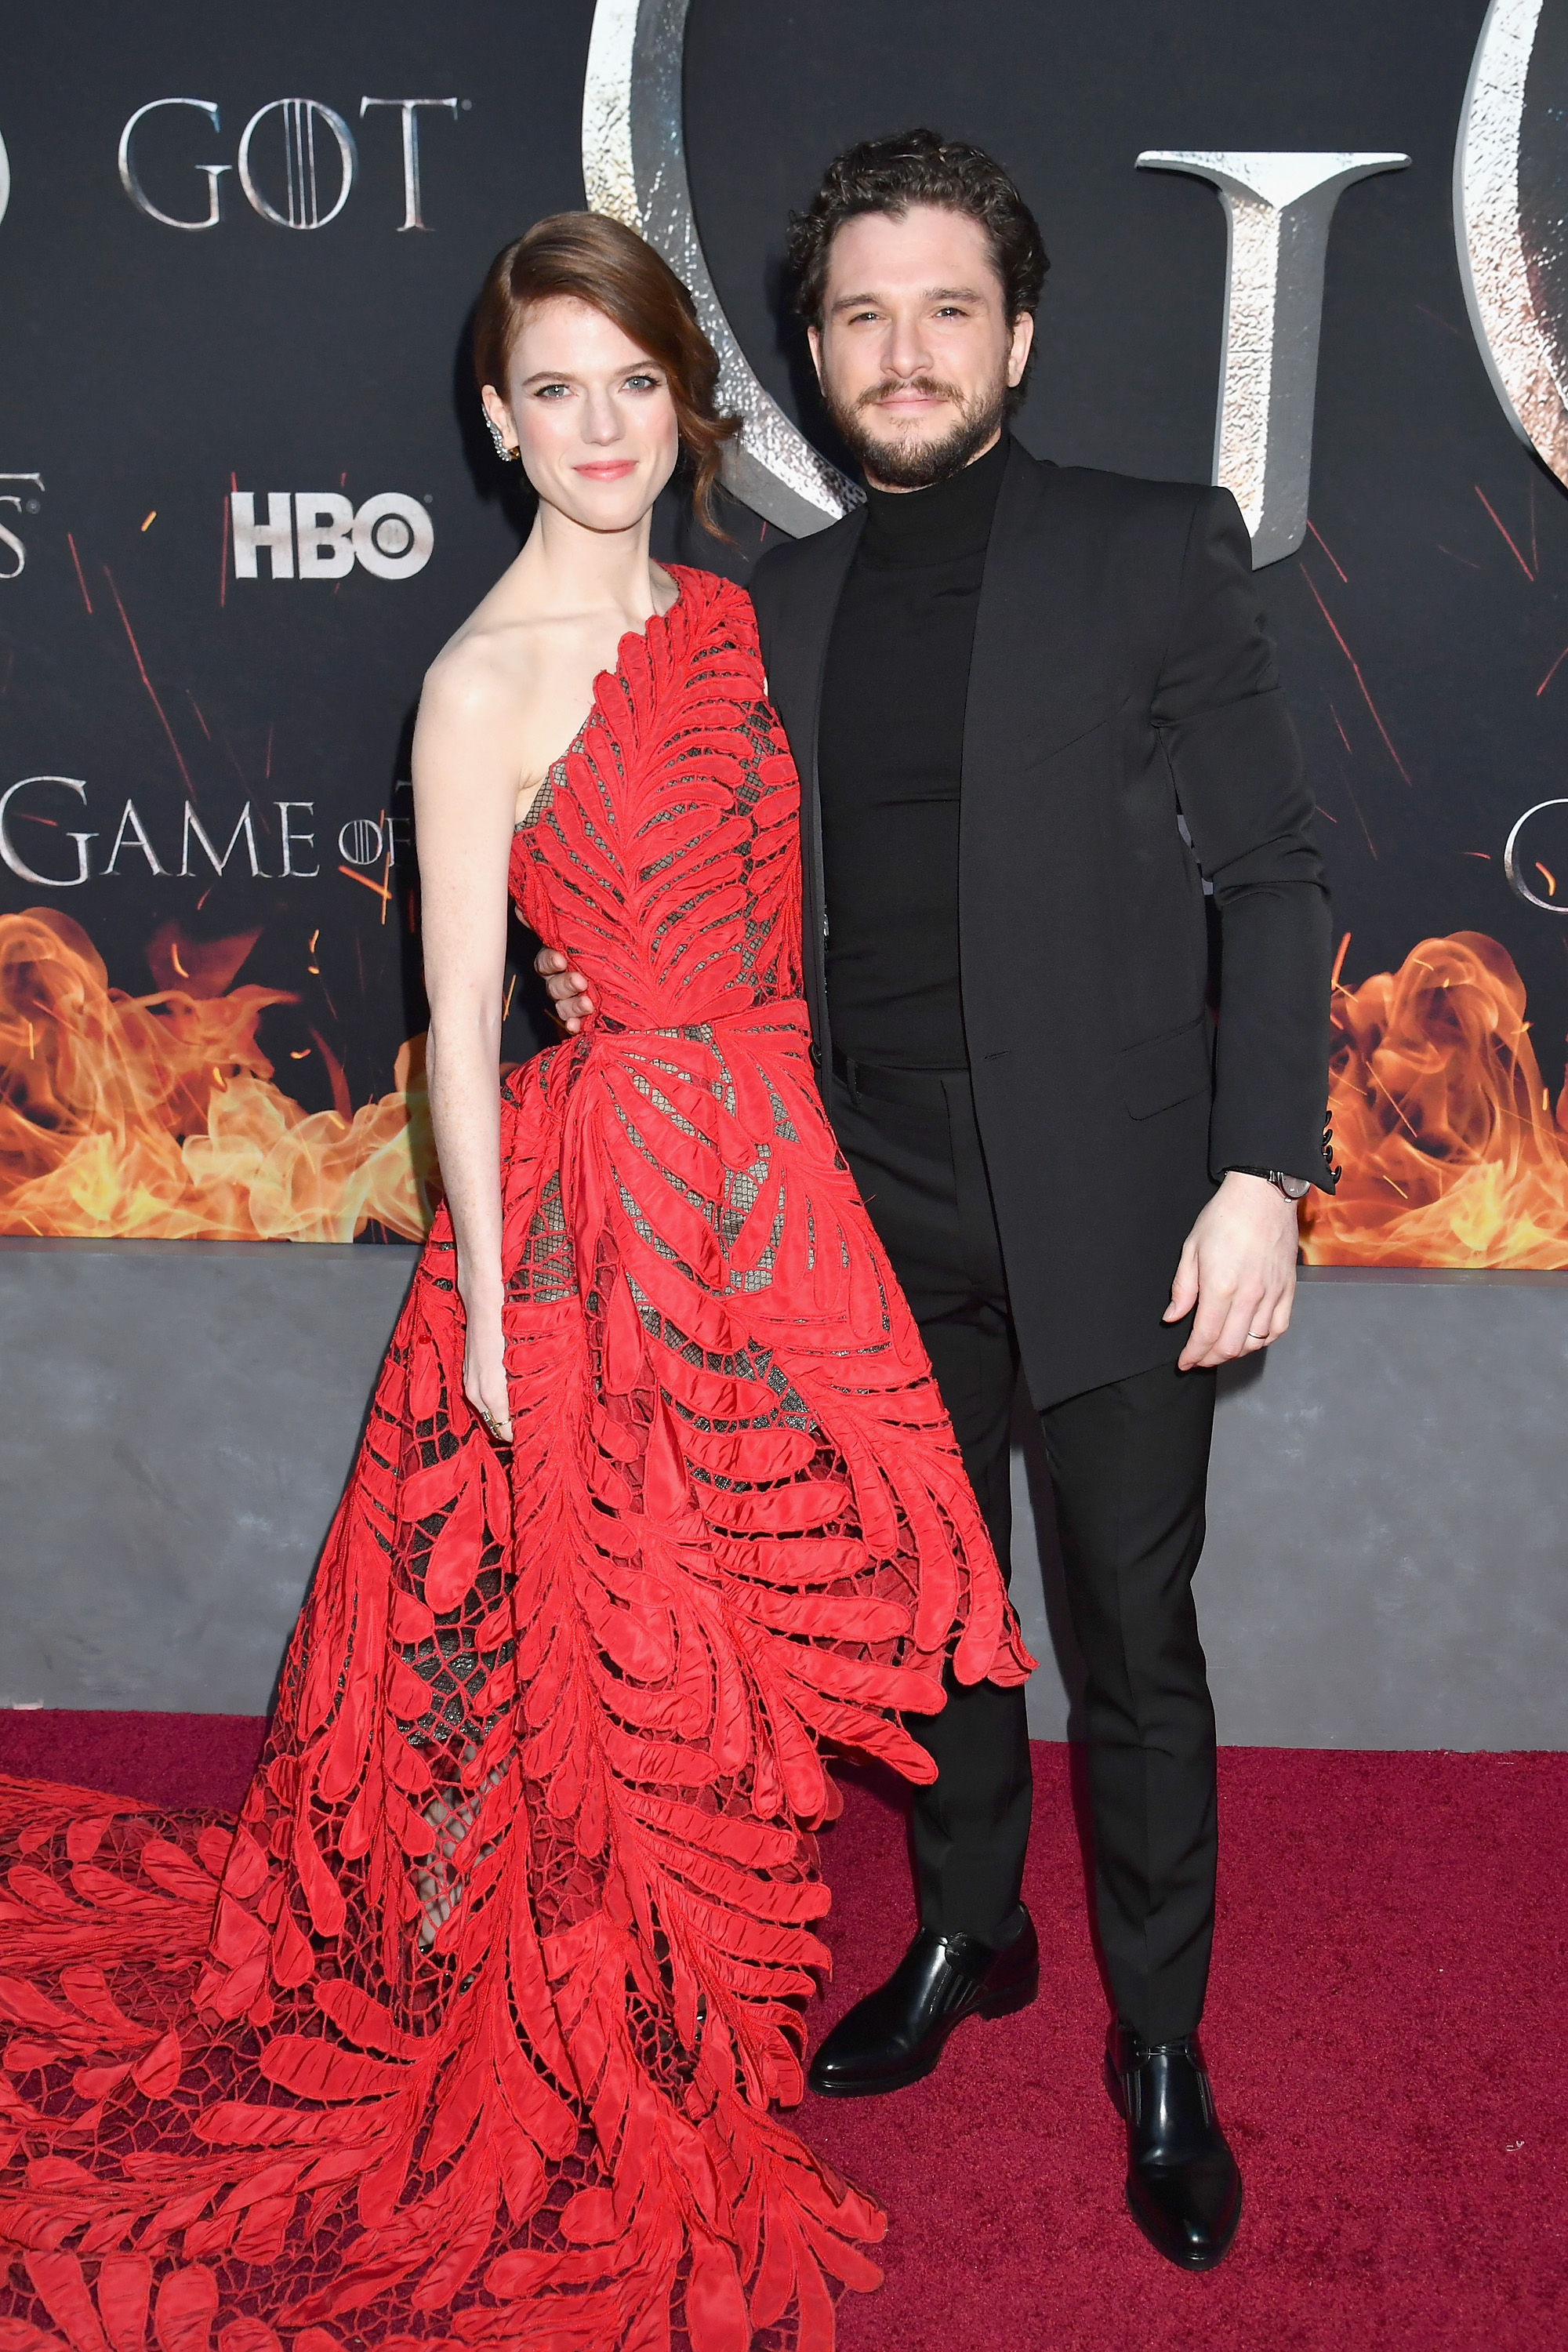 'Game of Thrones' red carpet premiere